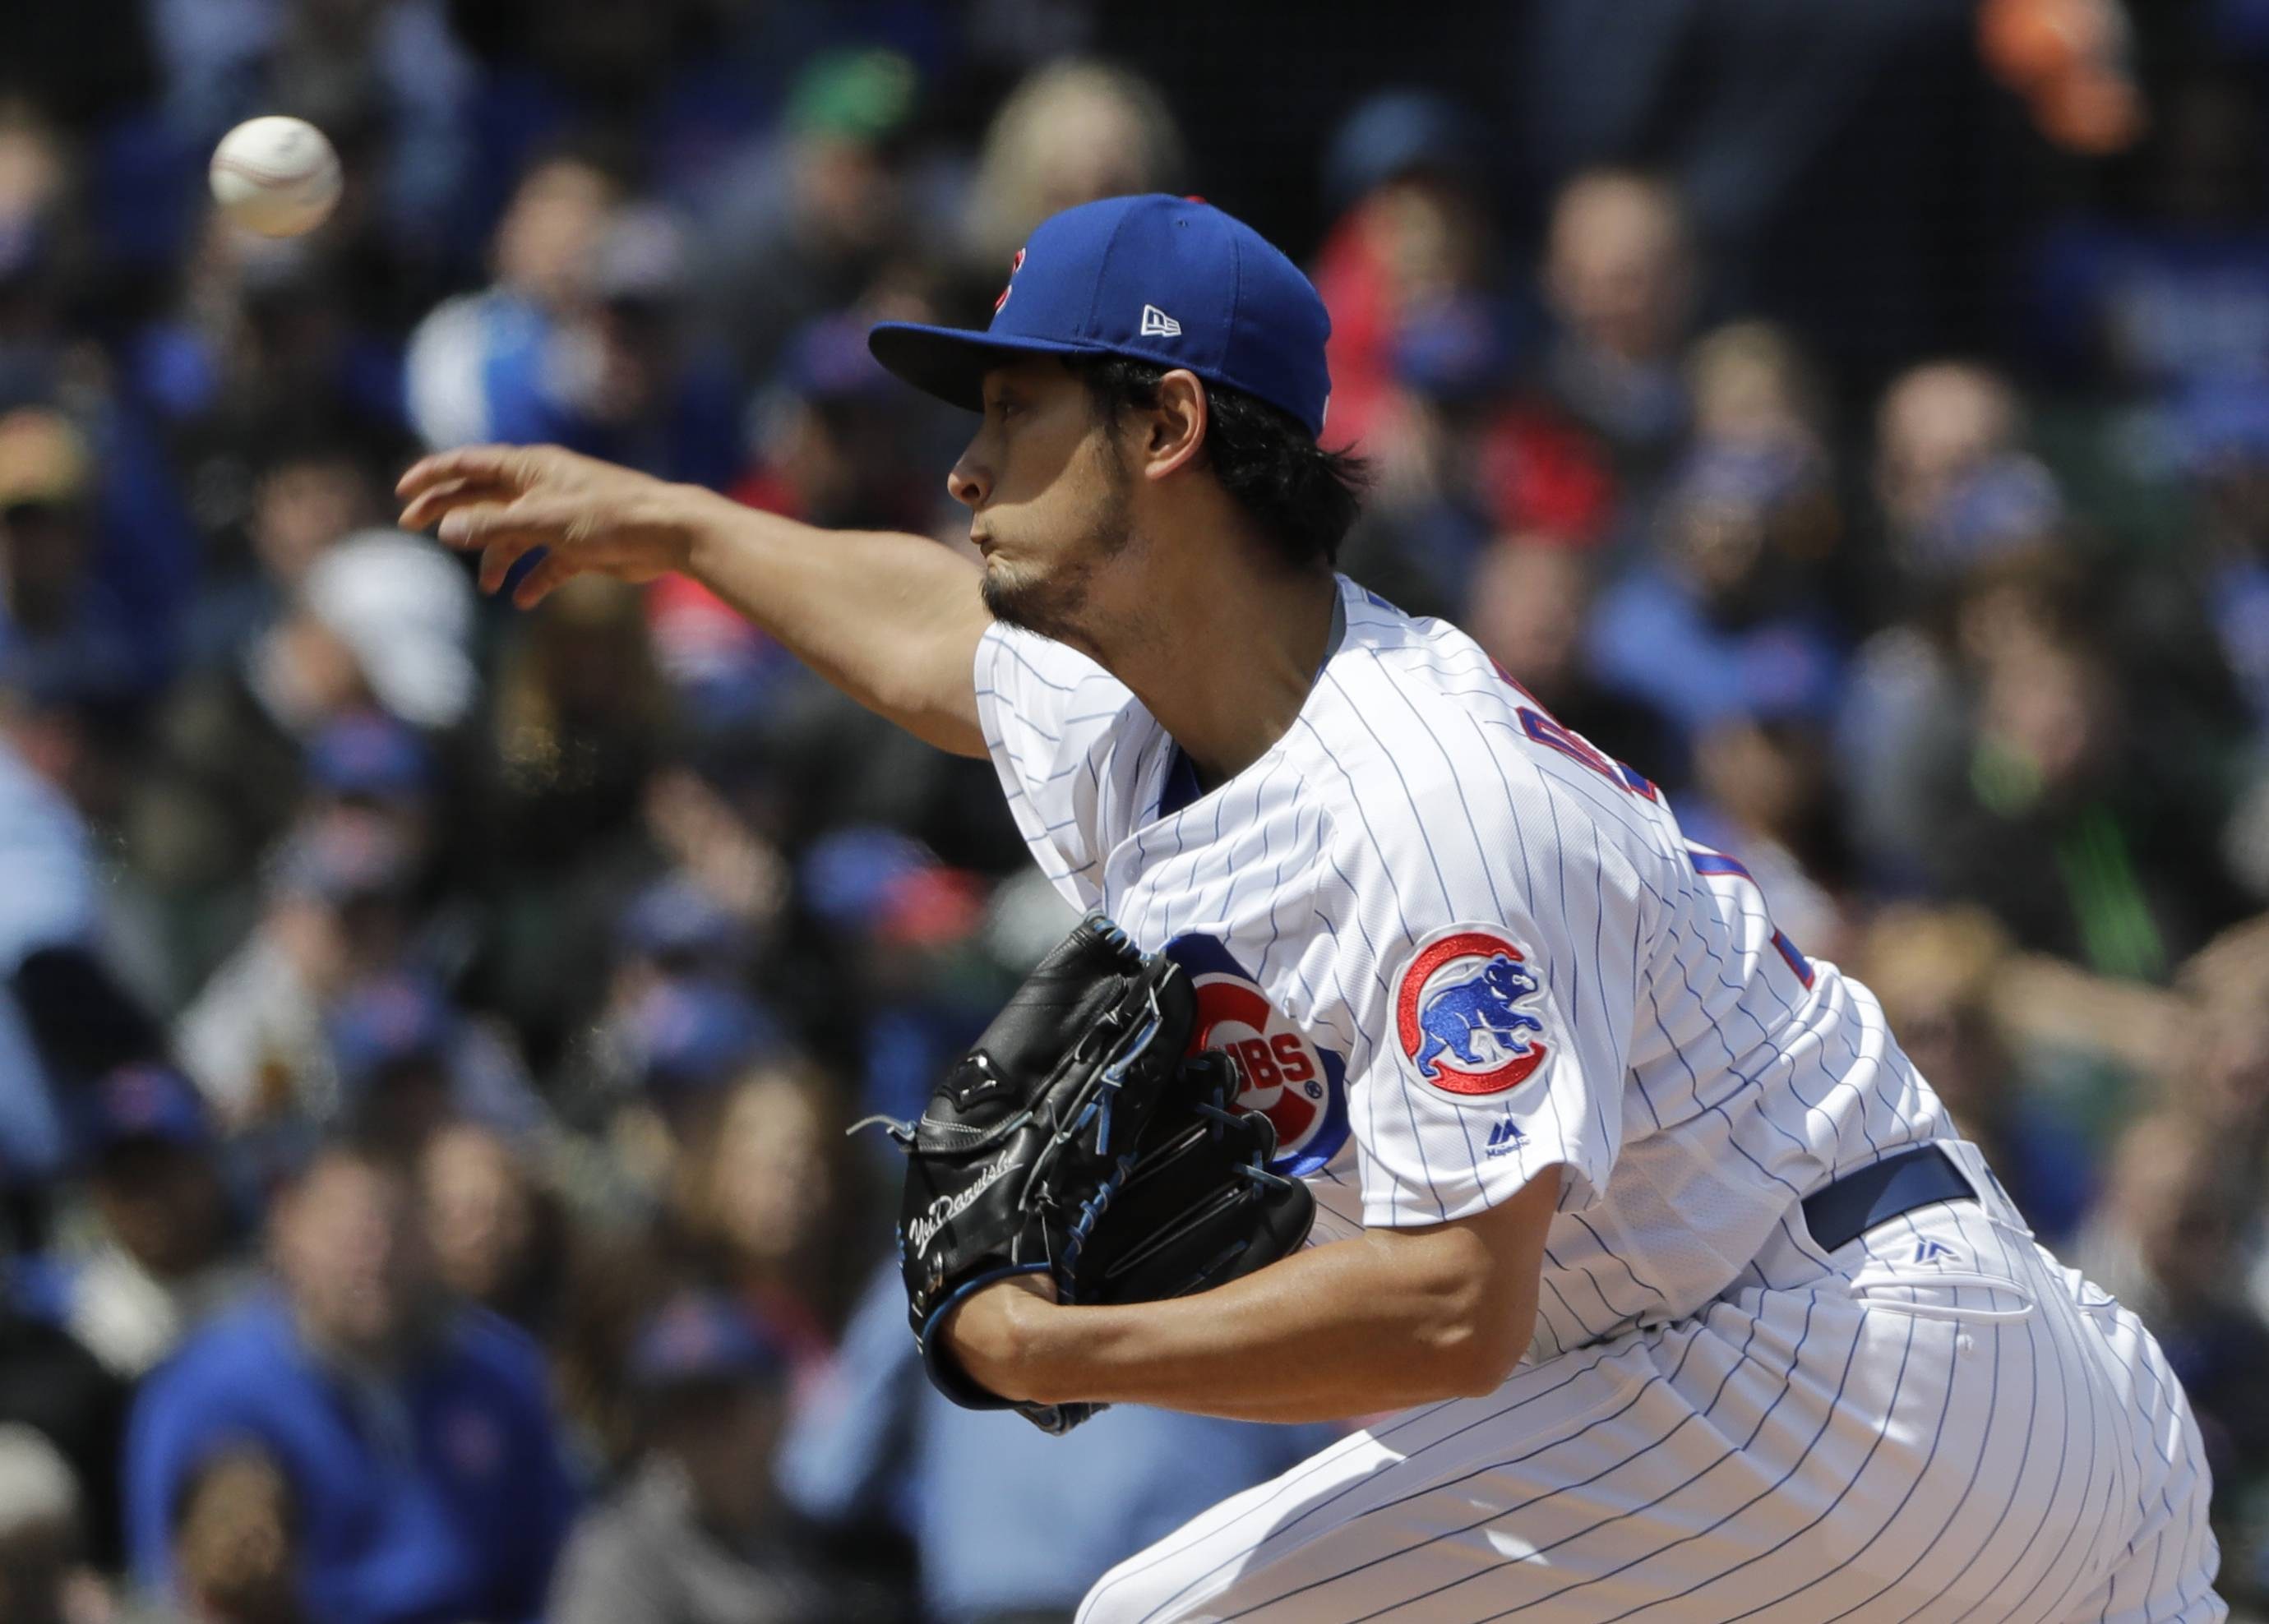 Cubs' Darvish gives much stronger performance in win over Brewers